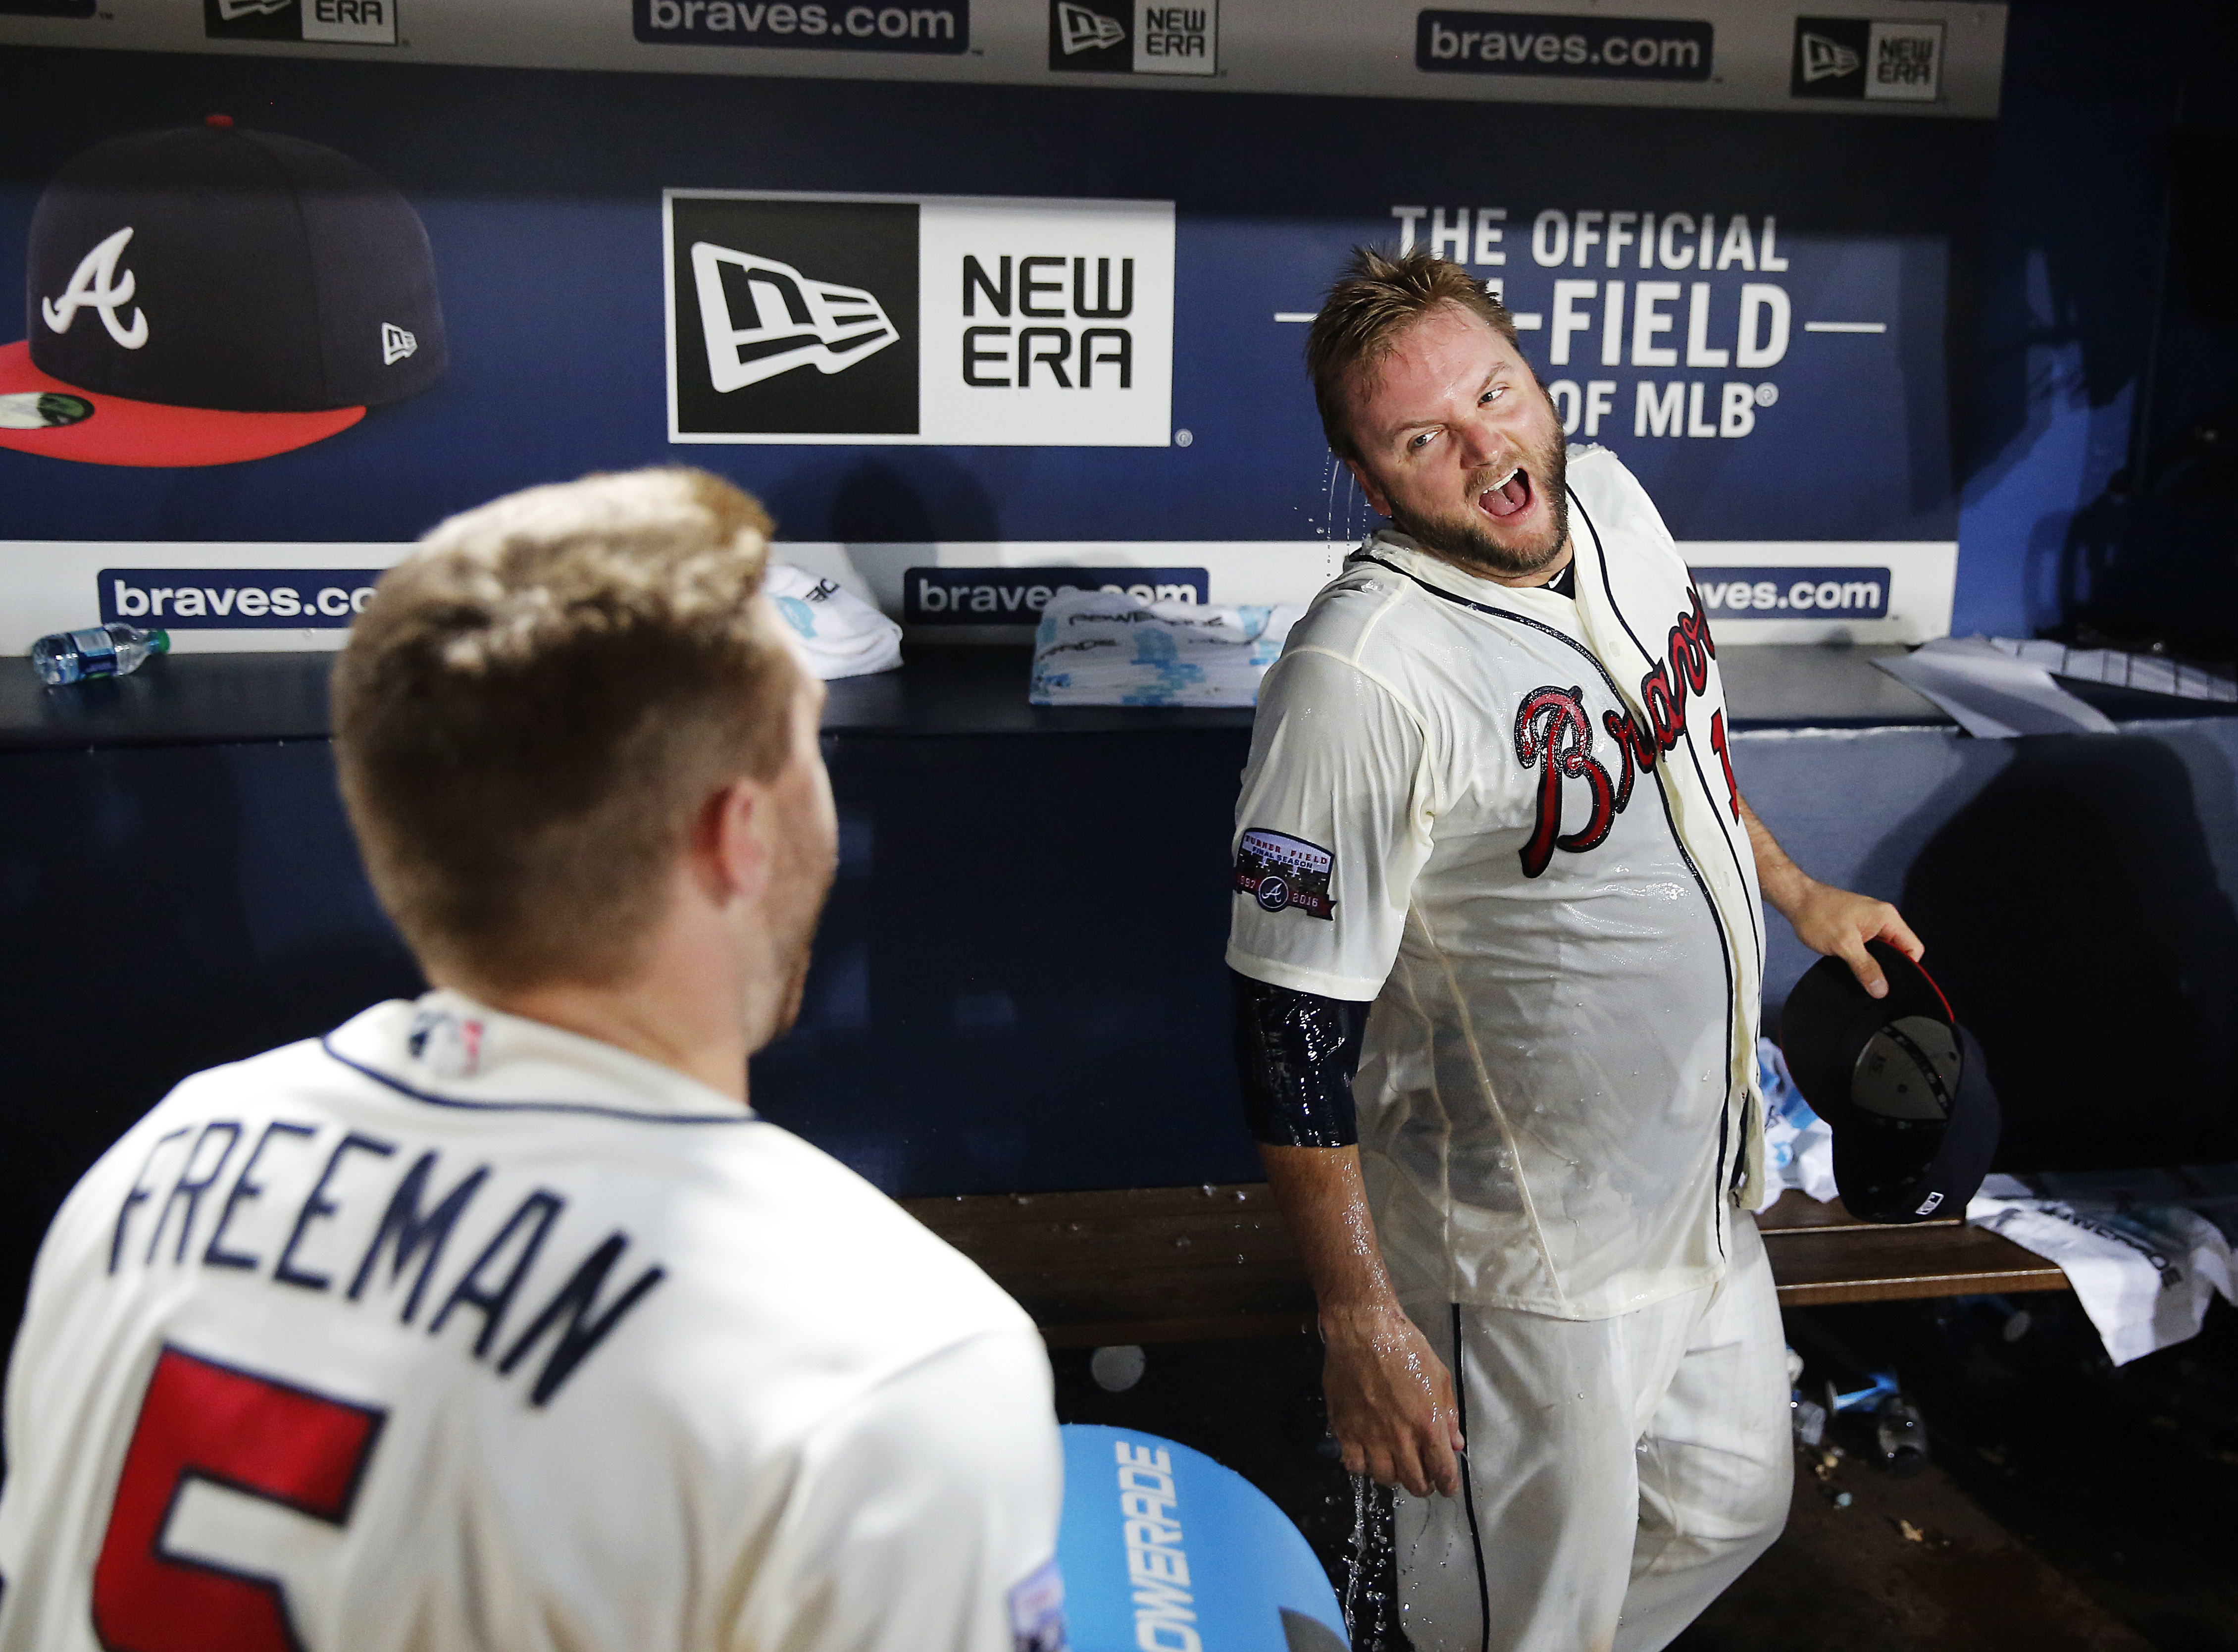 Atlanta Braves' A.J. Pierzynski, right, reacts after being doused by teammate Freddie Freeman after they defeated the New York Mets in a baseball game in Atlanta, Saturday, Sept. 10, 2016. (AP Photo/David Goldman)